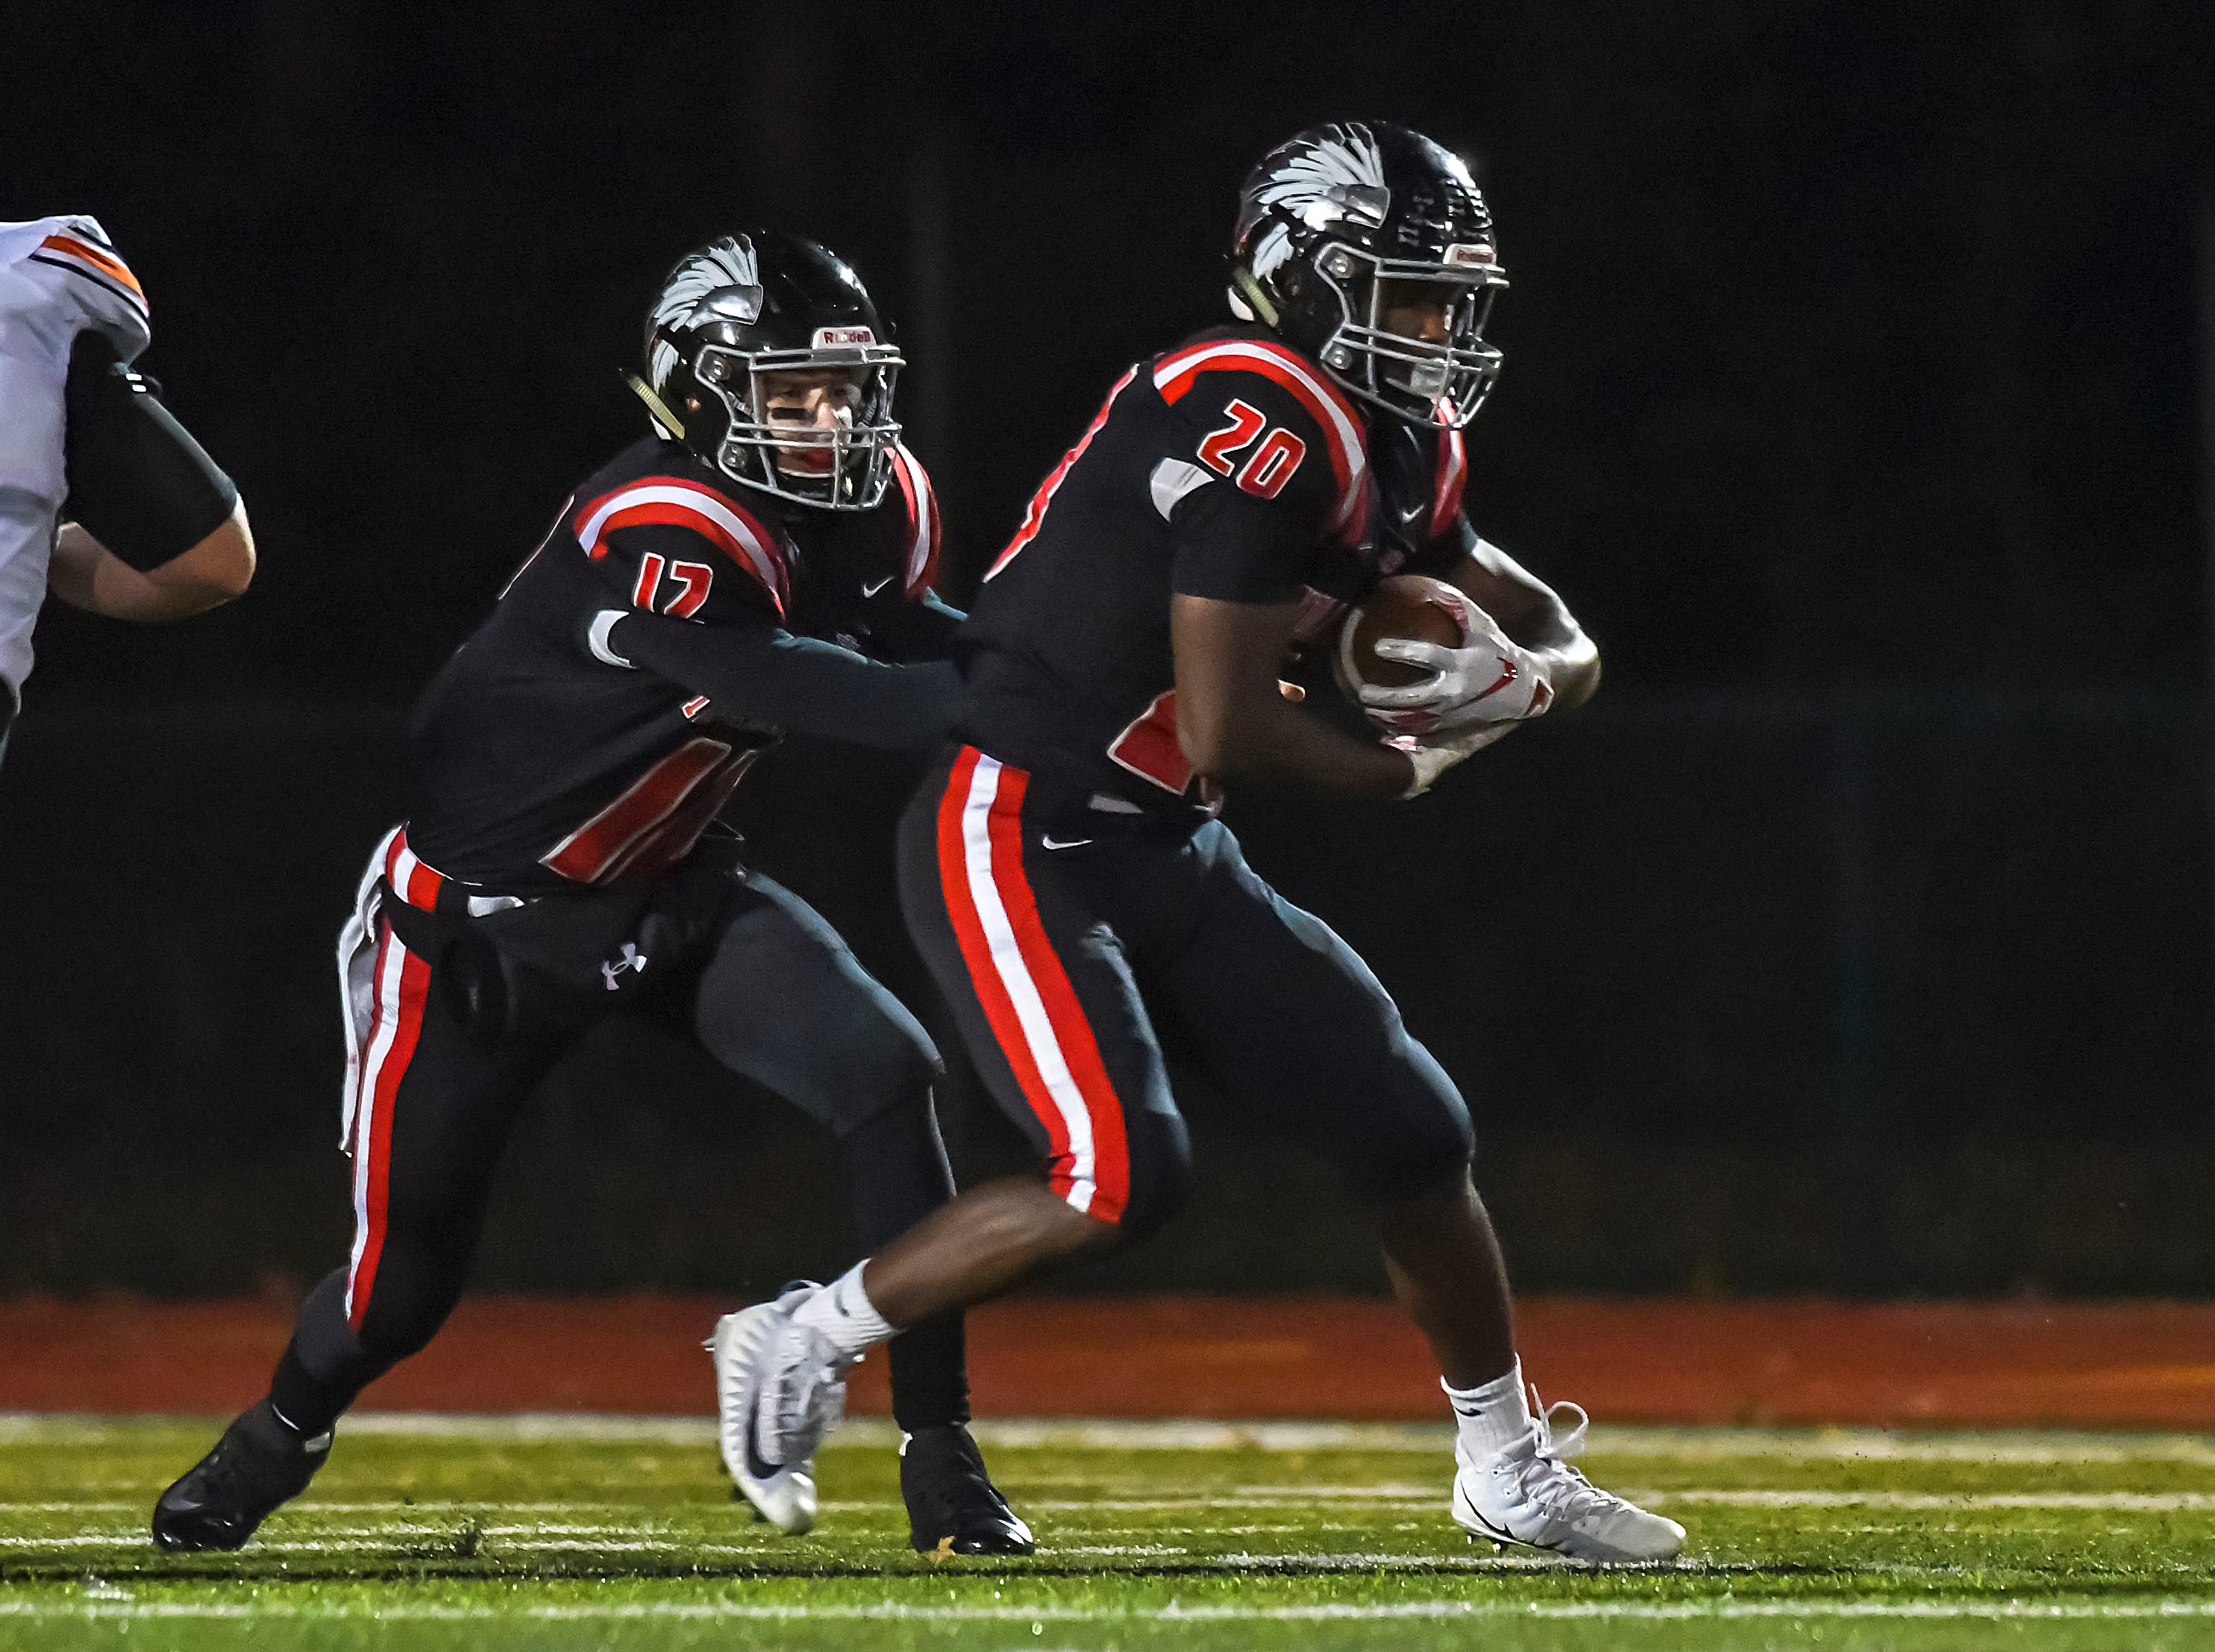 Braves John Mark Williams (20) takes a handoff from Cole Dein (12) against Waerly in the OHSAA D4 Region 16 Playoffs at Indian Hill High School, Saturday, Nov. 3, 2018